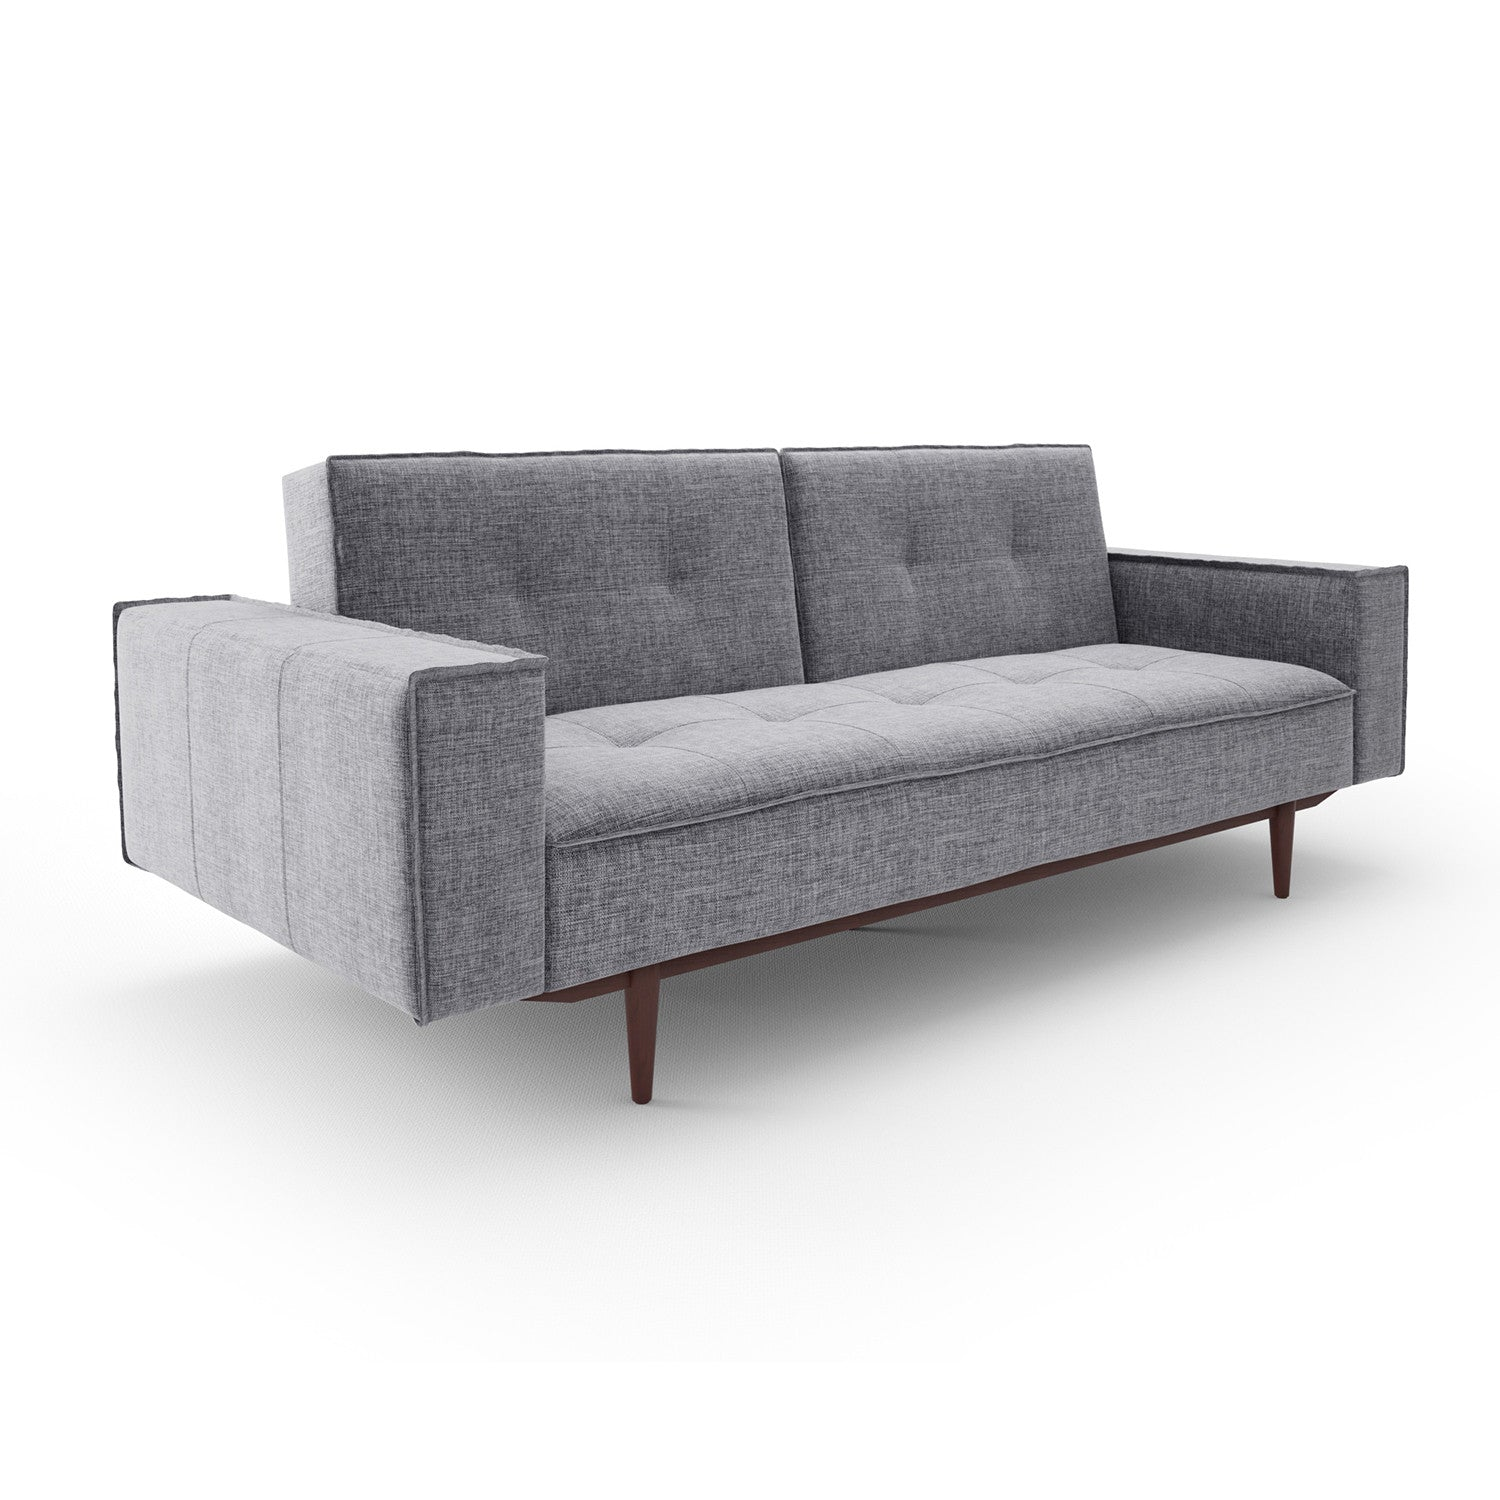 Scandinavian Convertible Sofa Mod House